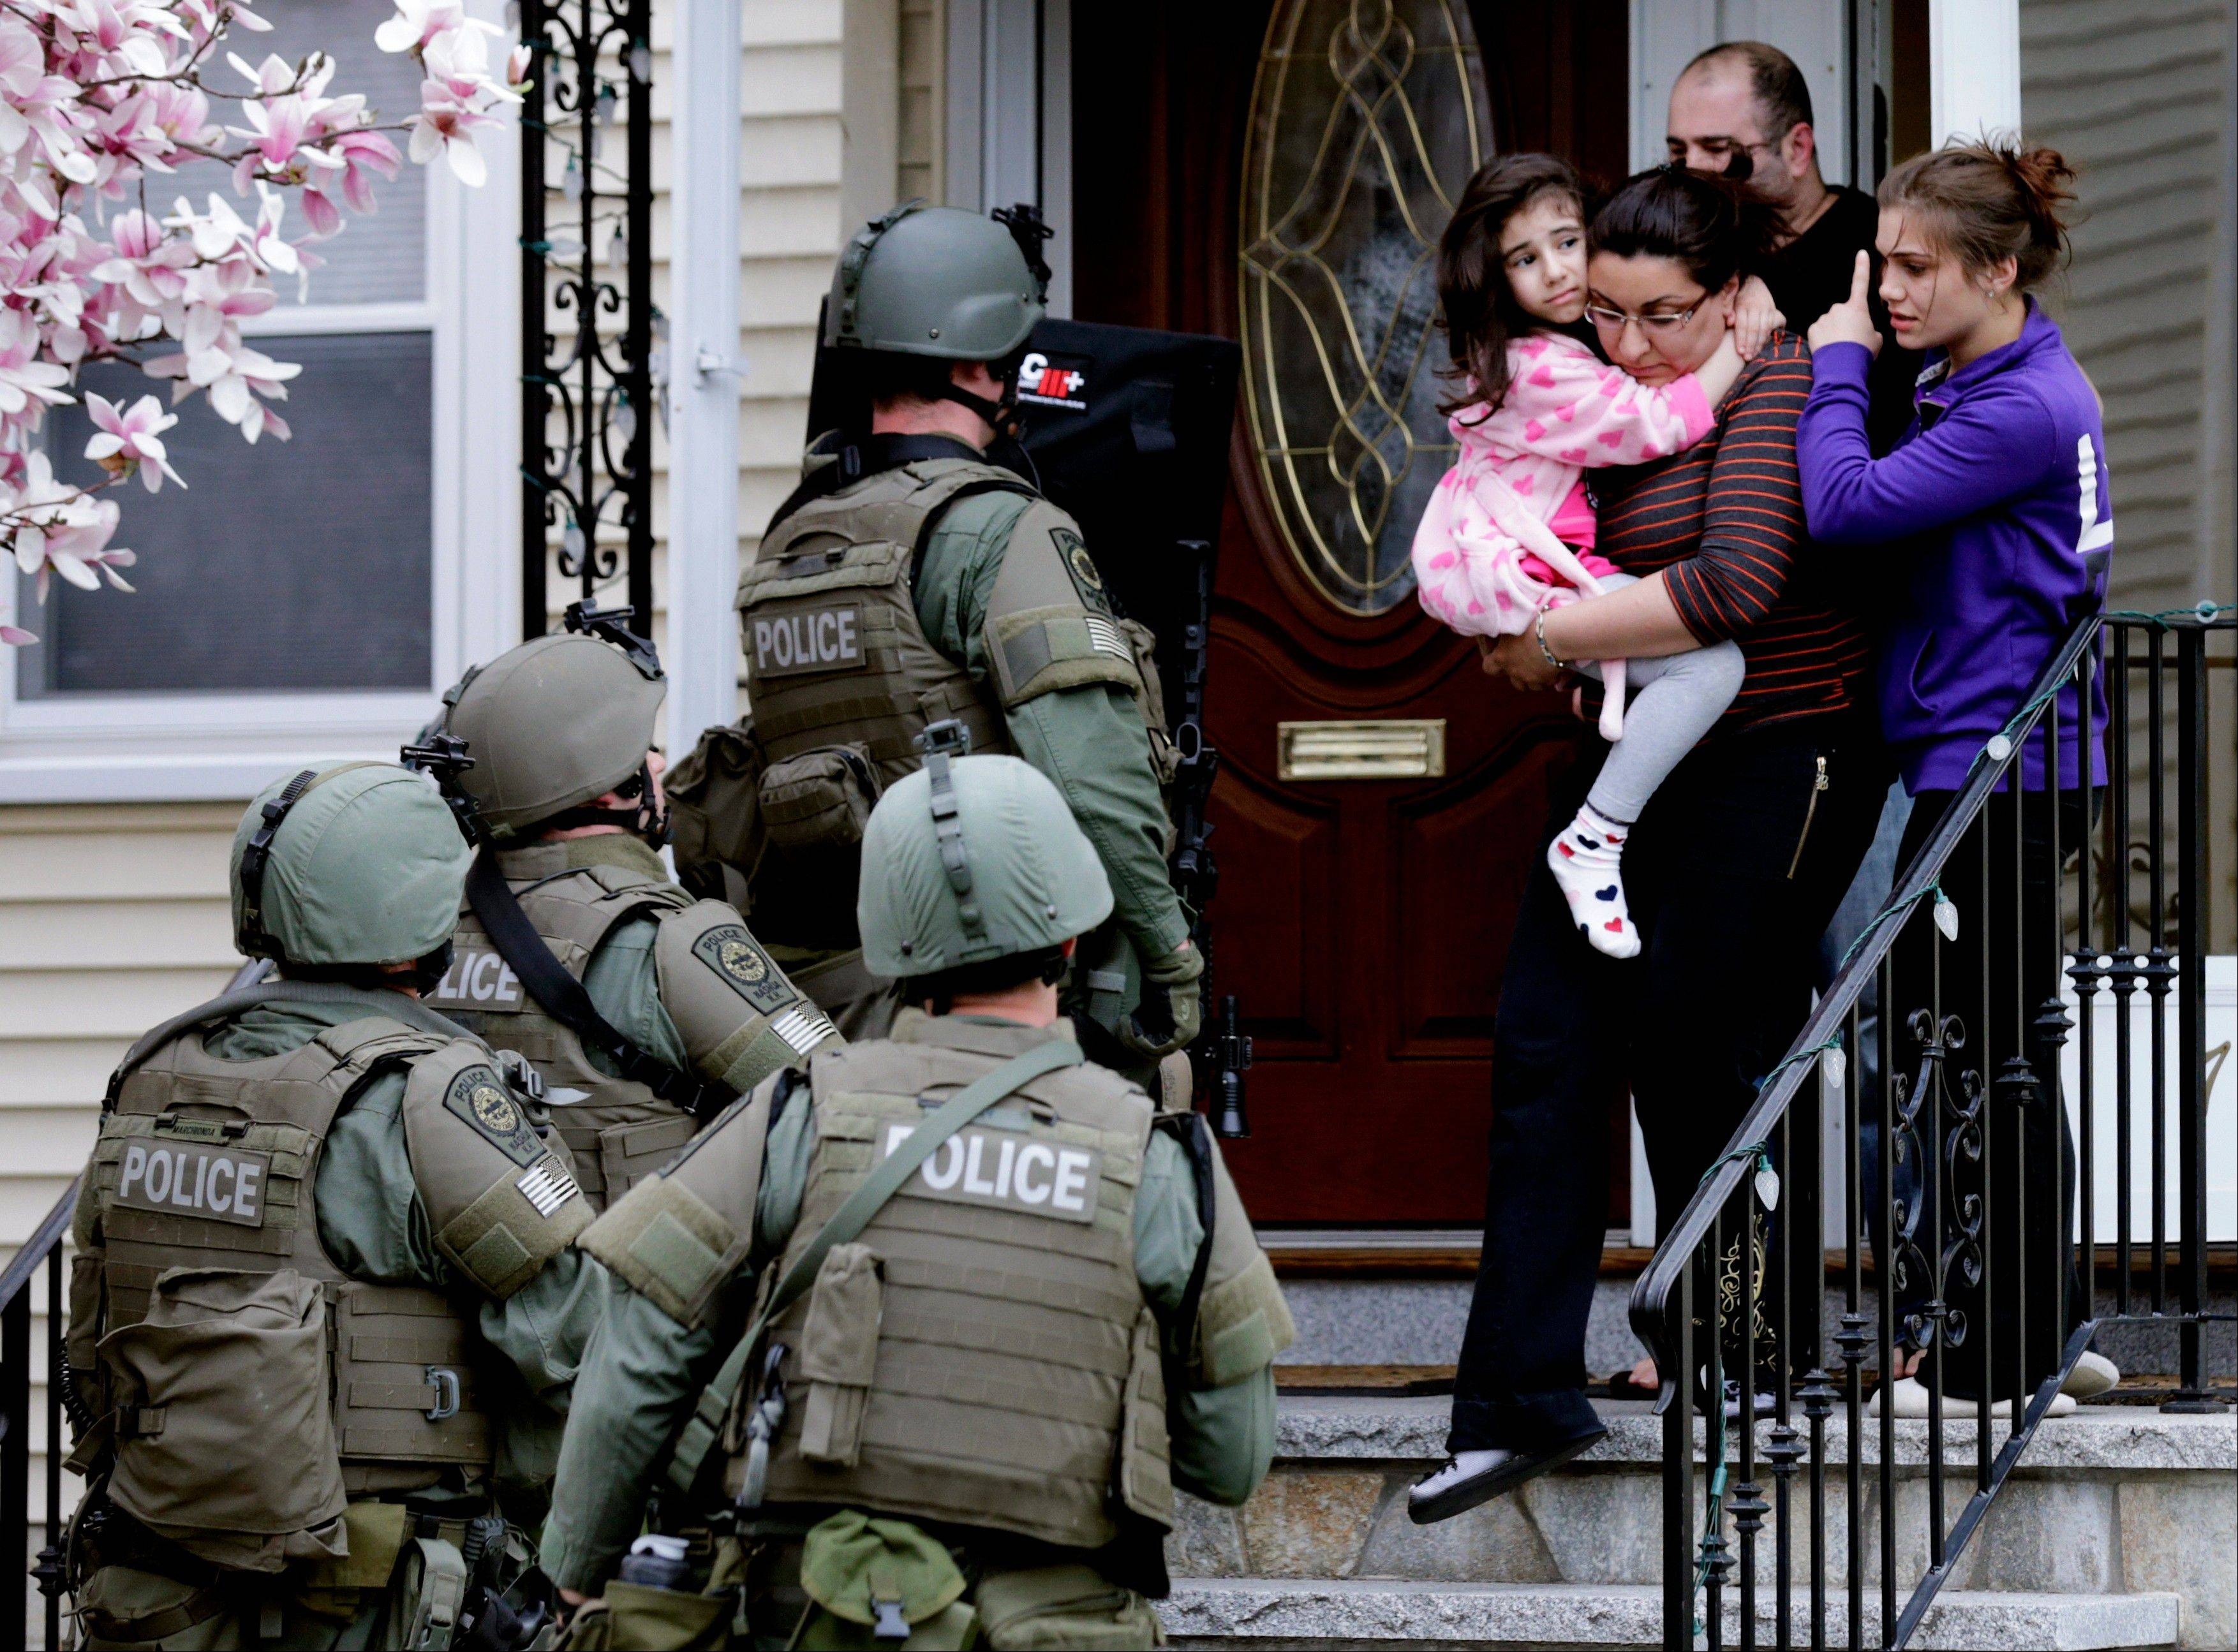 A woman carries a girl from their home as a SWAT team searching for a suspect in the Boston Marathon bombings enters the building in Watertown, Mass.